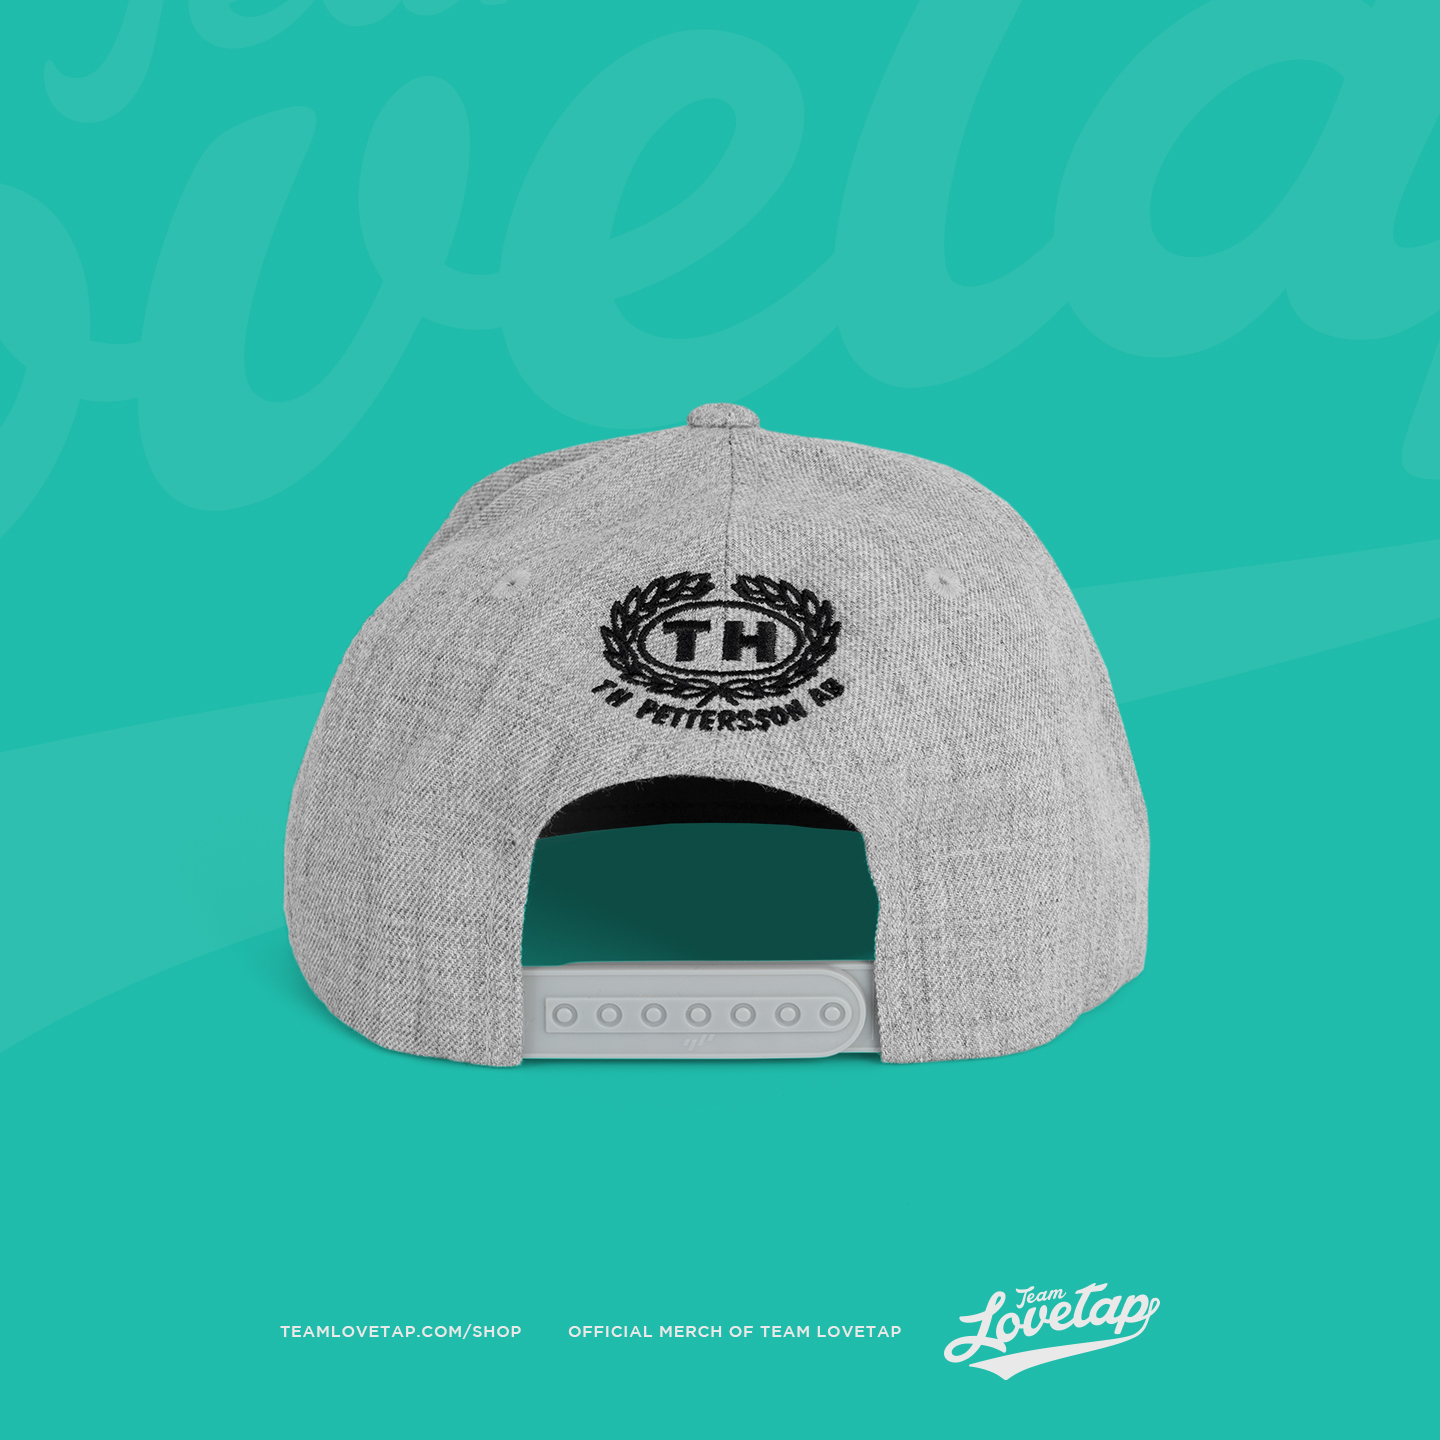 snapback_lightgray_teamlovetap_04.jpg